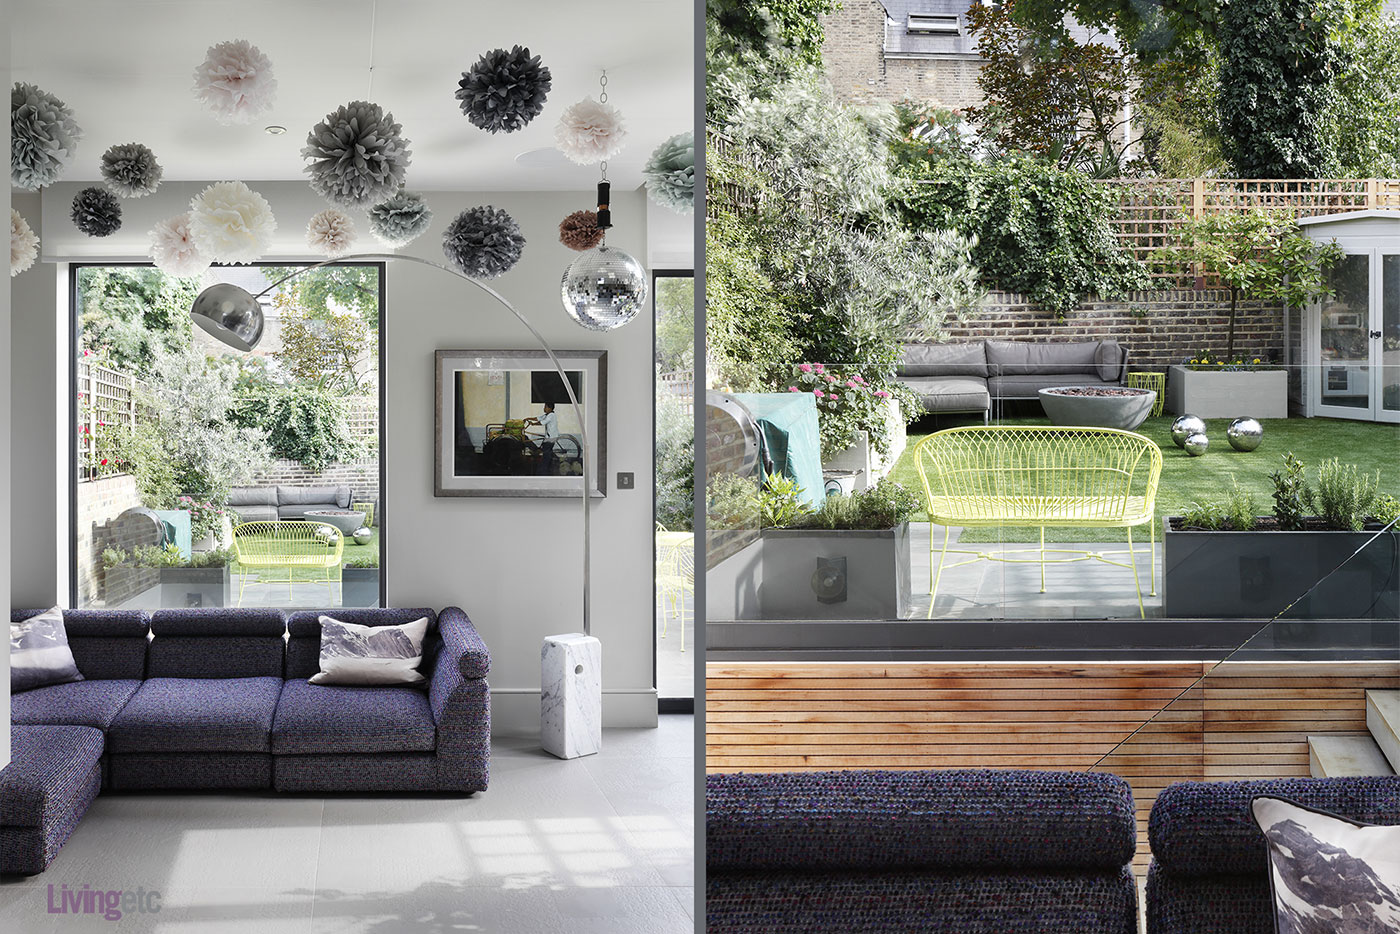 Modern interior with purple touches